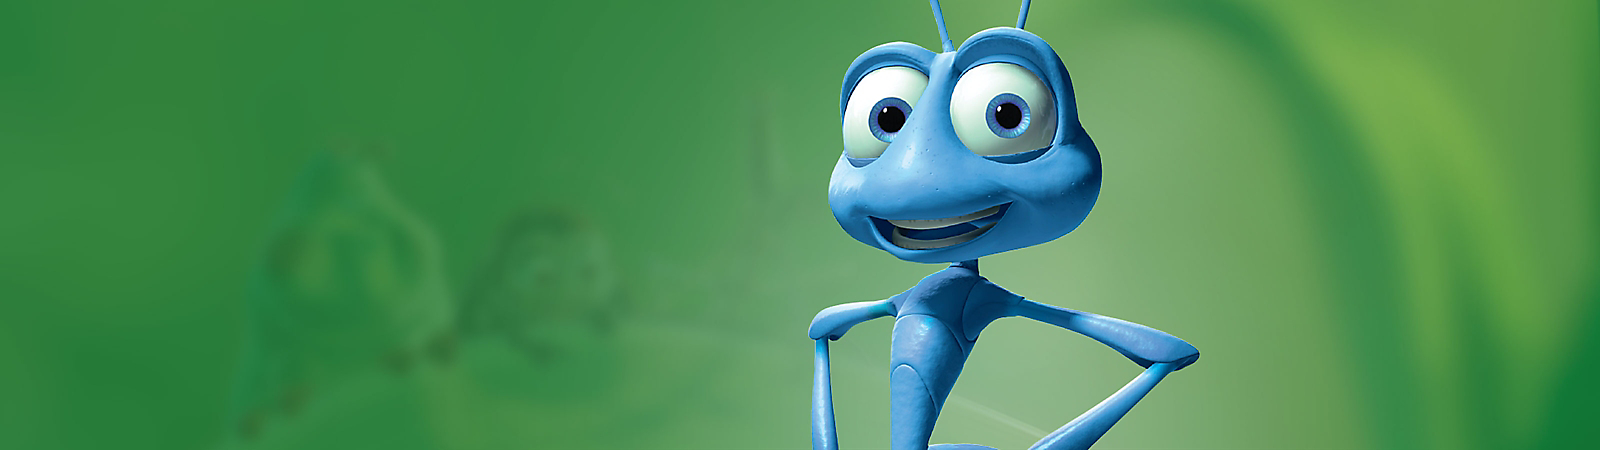 Background image of A Bug's Life